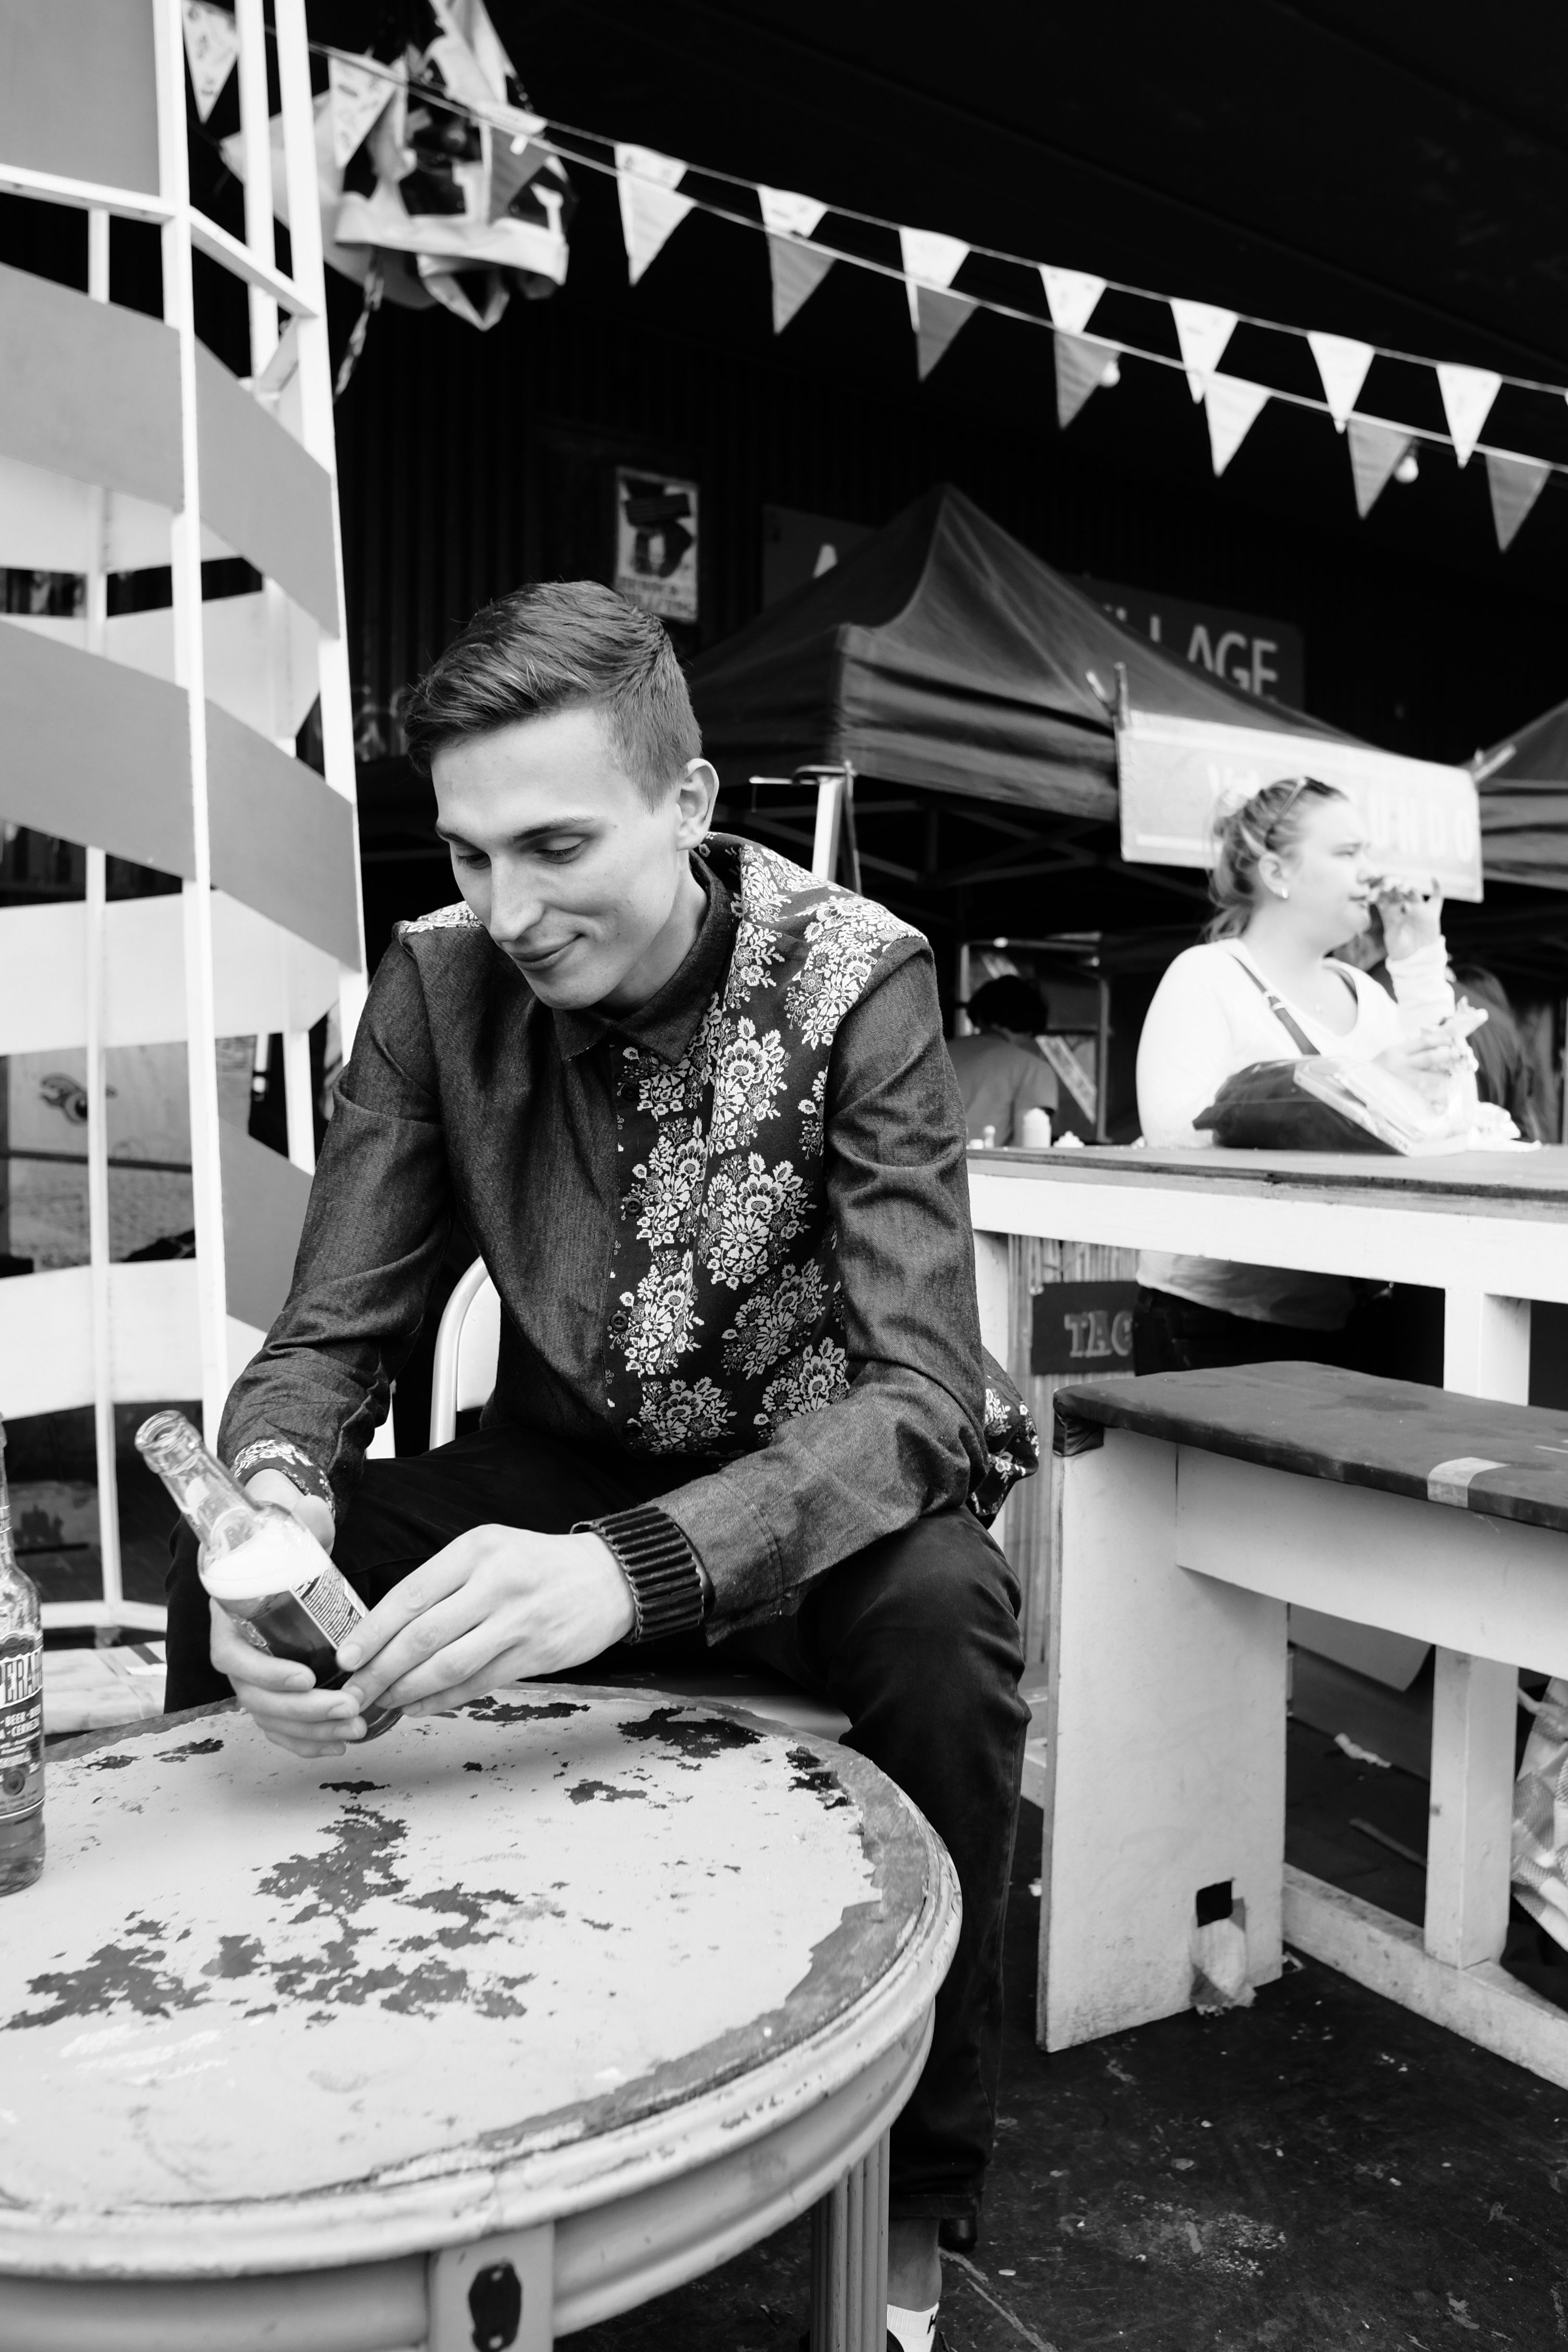 Meet Ginny Quid. A founder of THROWN community which promotes underground electronic music in London.  Being caught on the Portobello Road market, he's wearing FOMI brown suede bracelet that once used to be a brown leather biker jacket.  Many thanks to photographer Innocent Adriko. Full story: https://www.facebook.com/KarolinaFomi/photos/a.1045200062211451.1073741858.664808480250613/1045200135544777/?type=3&theater